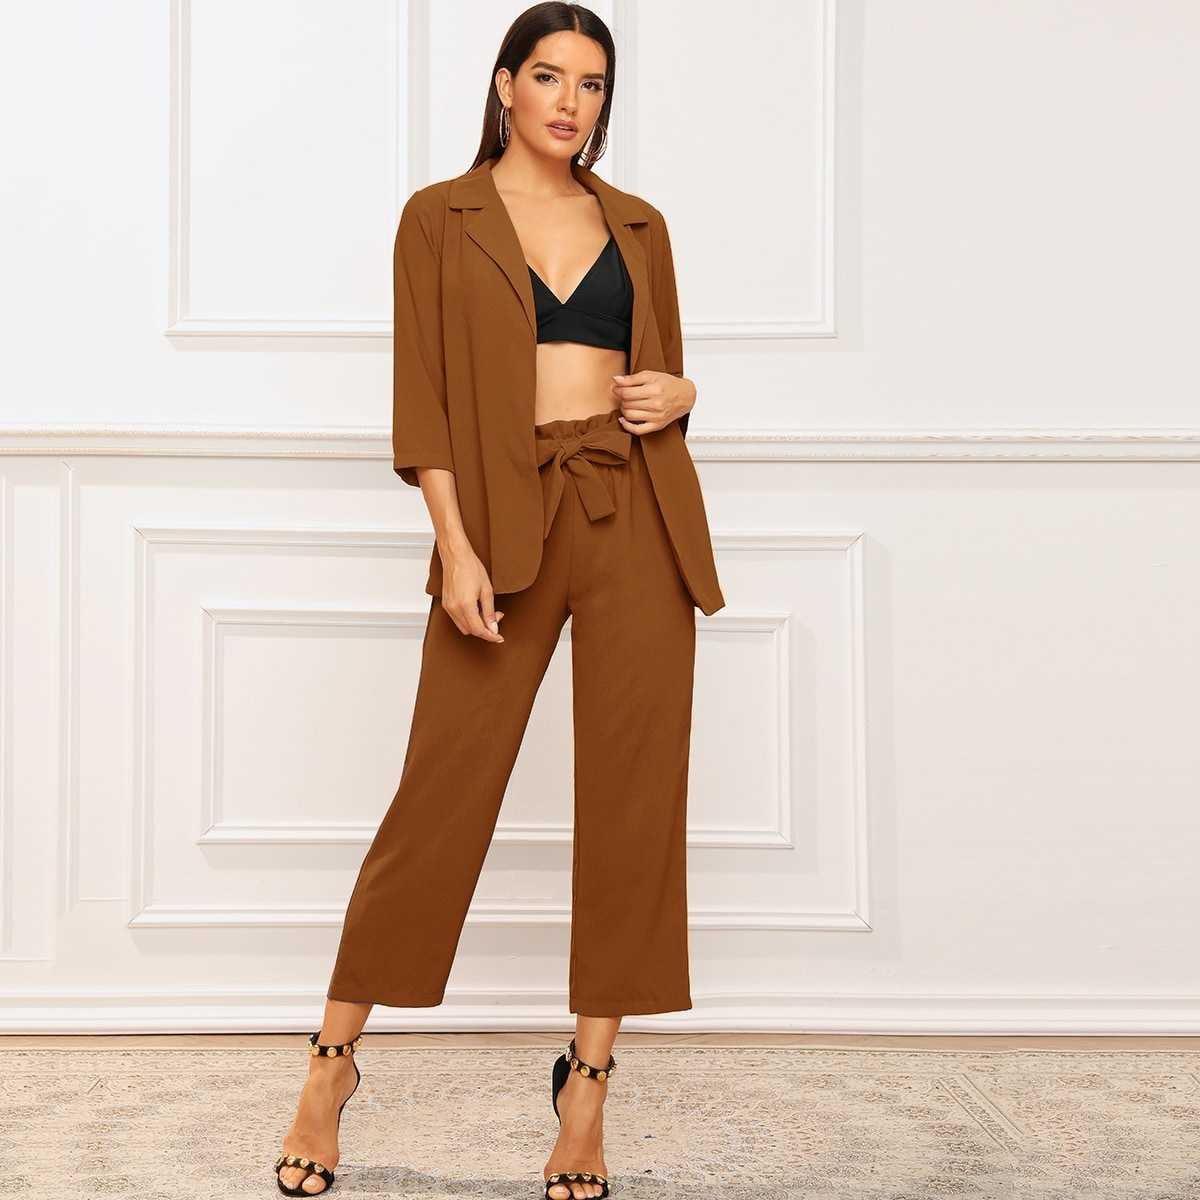 Solid Lapel Collar Blazer & Belted Pants in Brown by ROMWE on GOOFASH